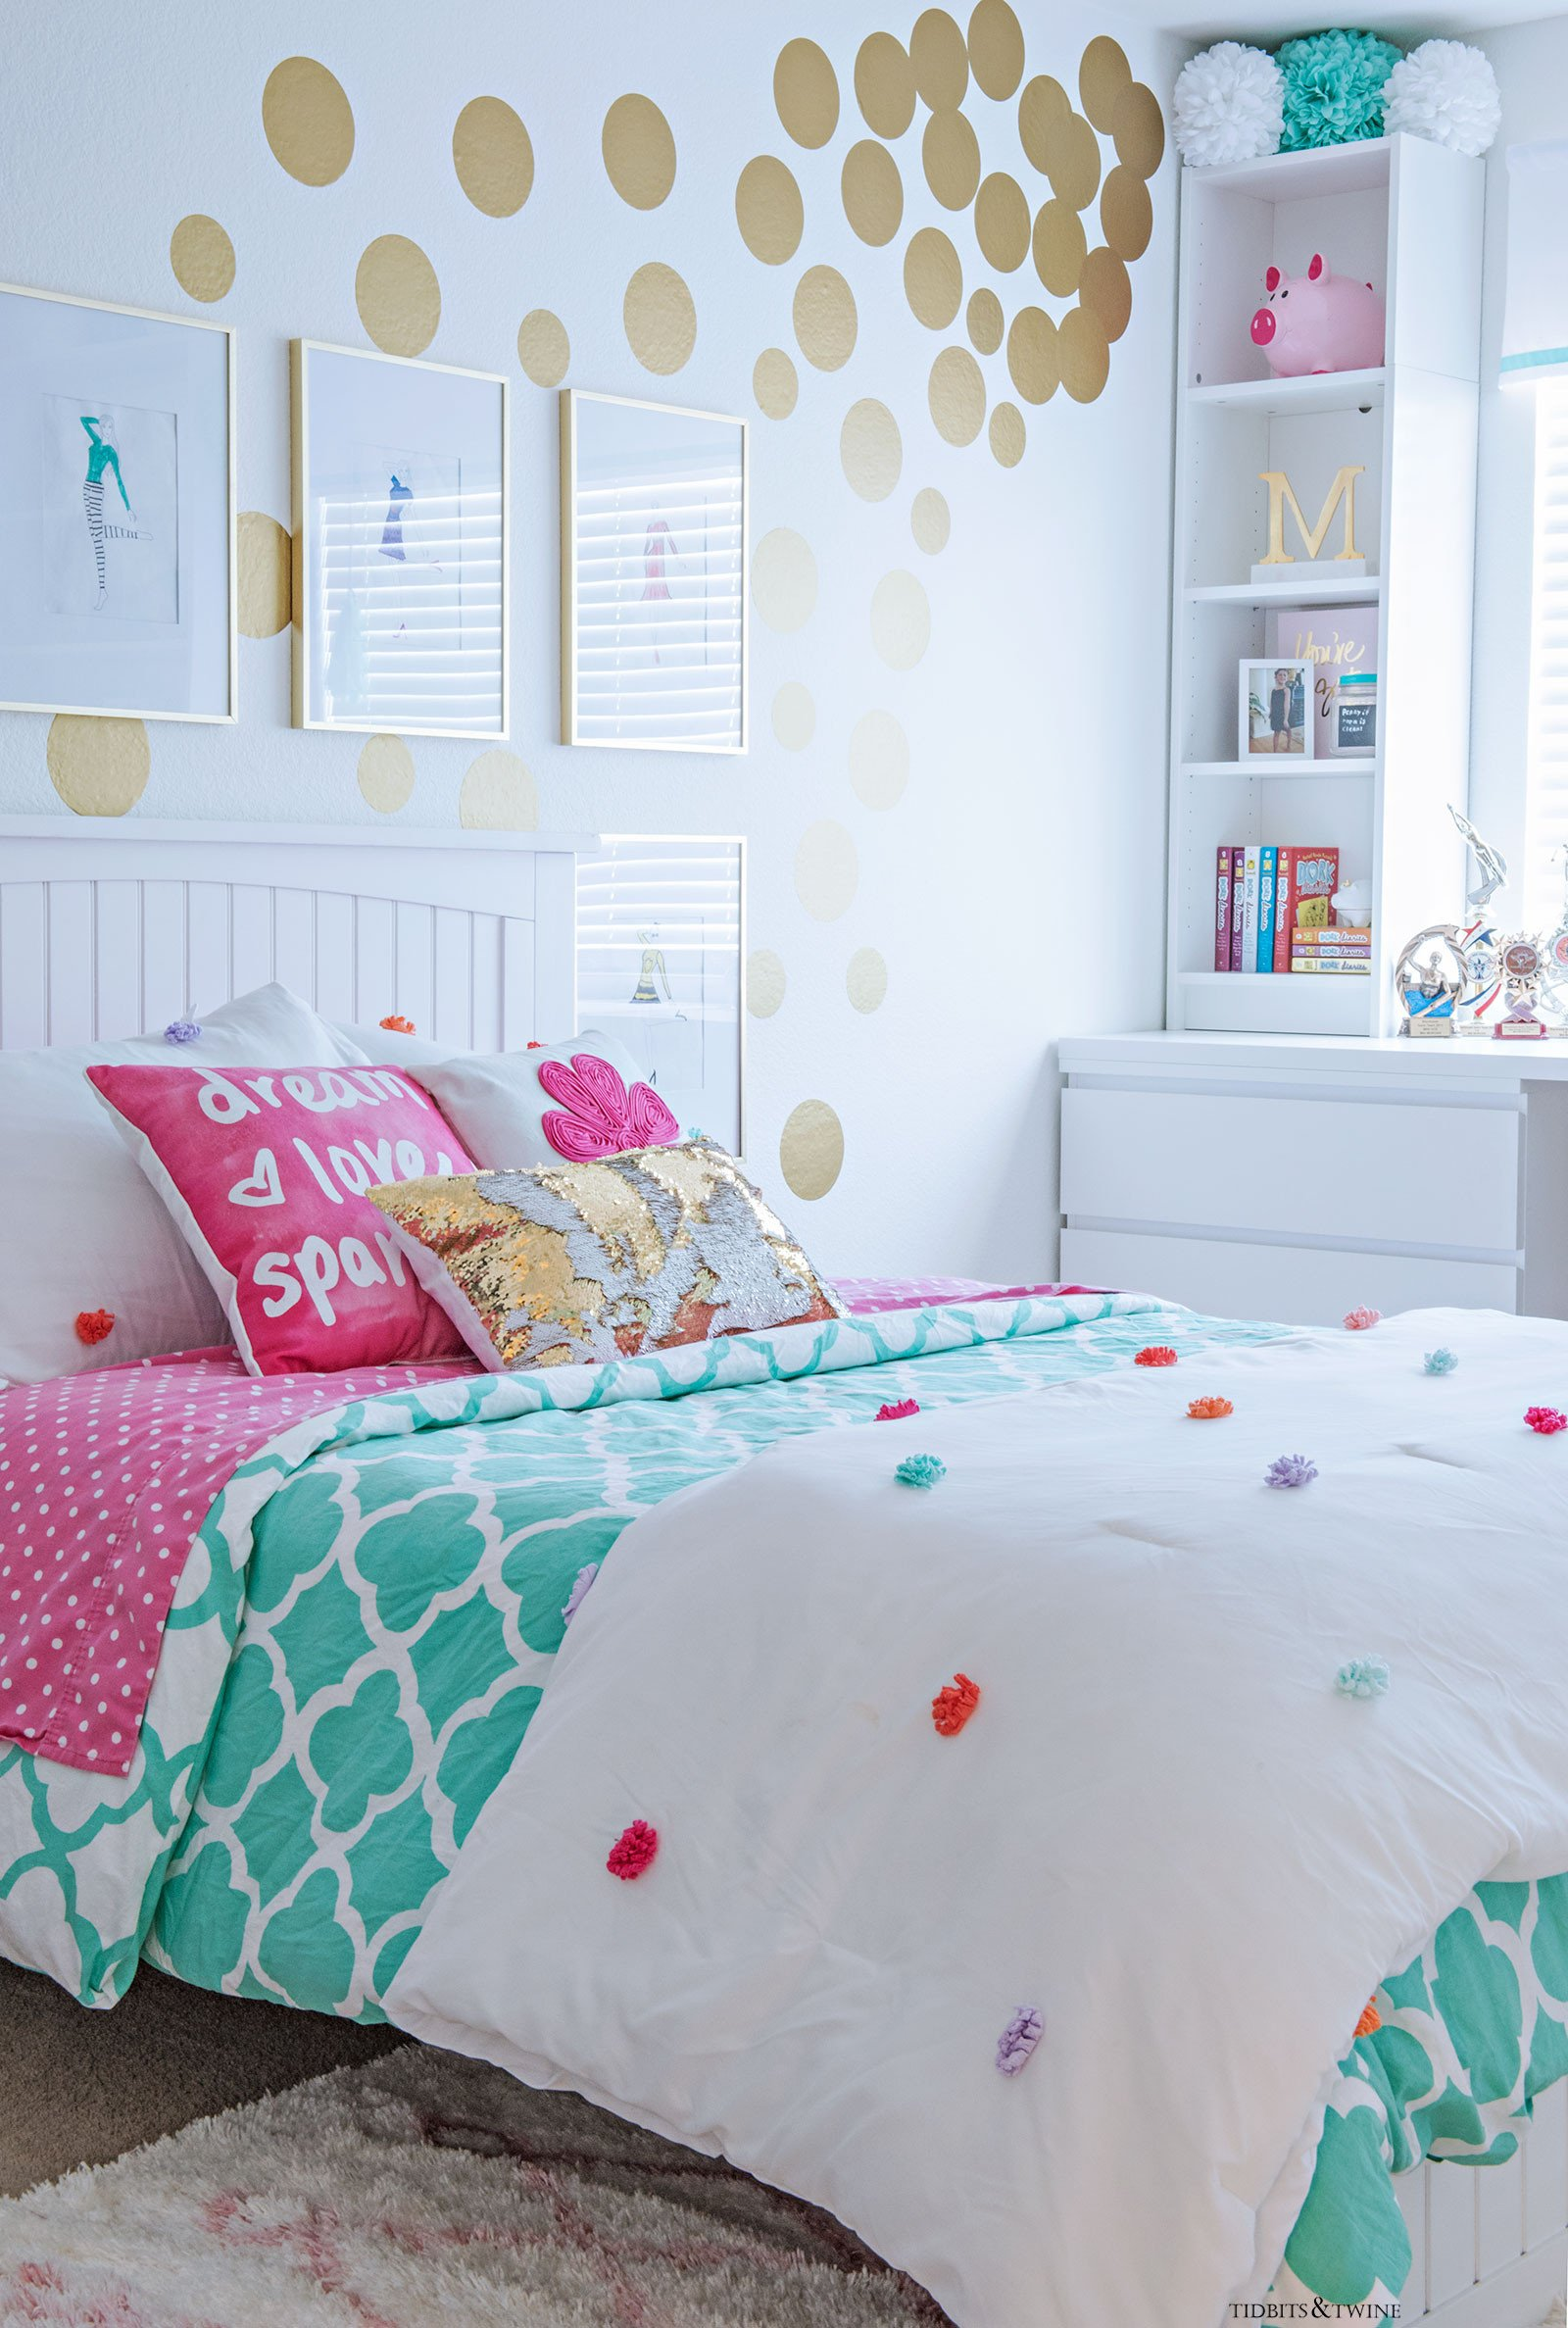 Room Decor Ideas for Girl Awesome Tween Girl S Bedroom Makeover Reveal Tidbits&twine